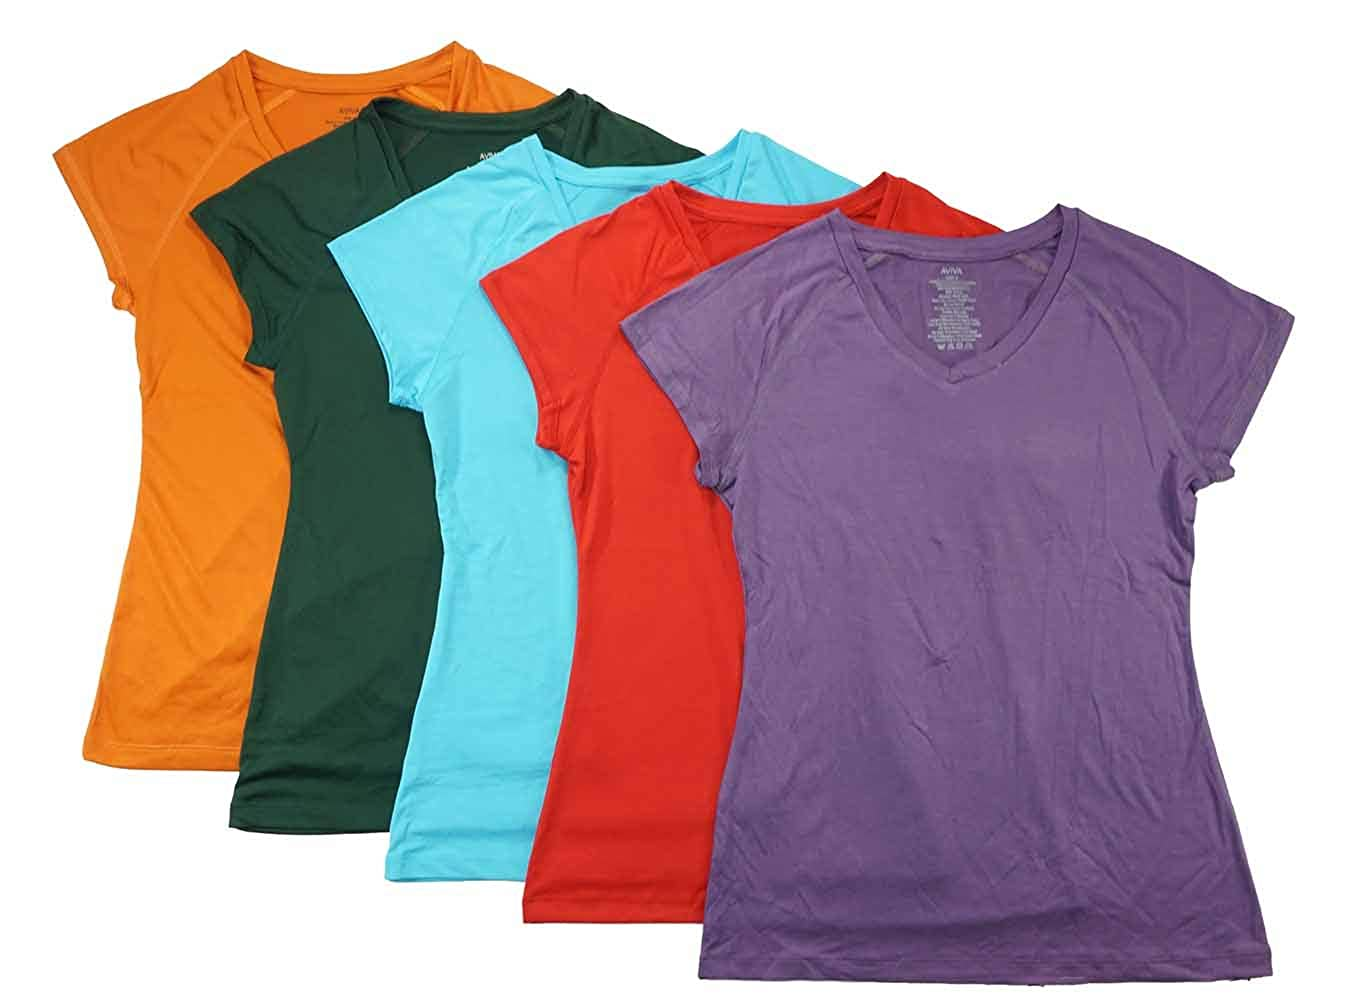 Aviva Womens Five-Pack Assorted Color Dry Fit Active Tops